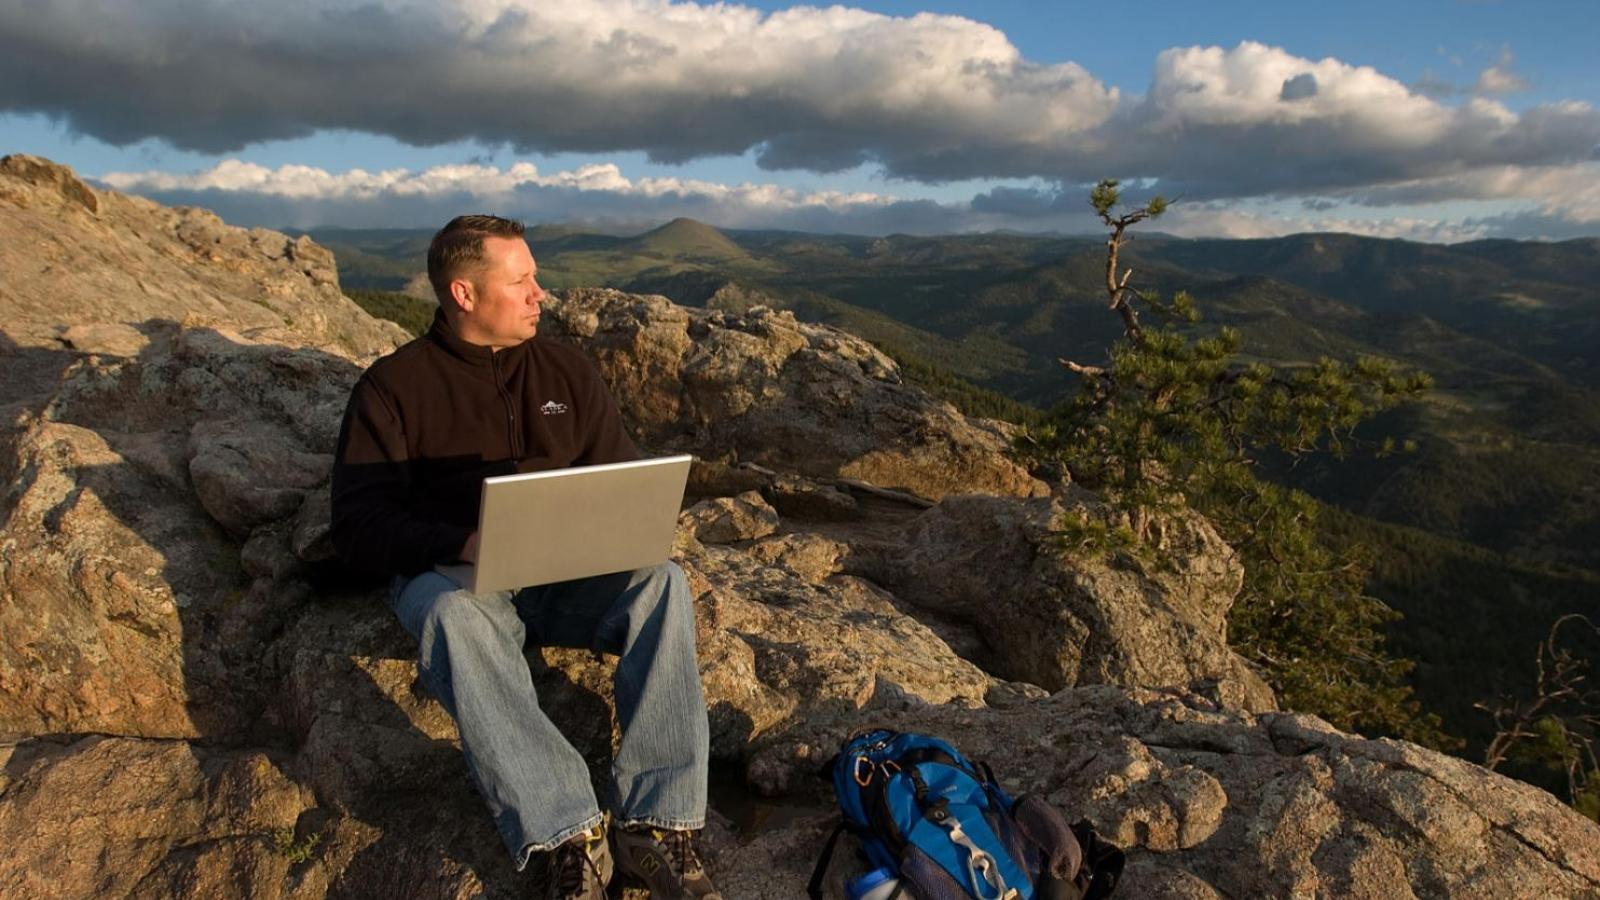 Man with laptop on a rocky overlook in the mountains